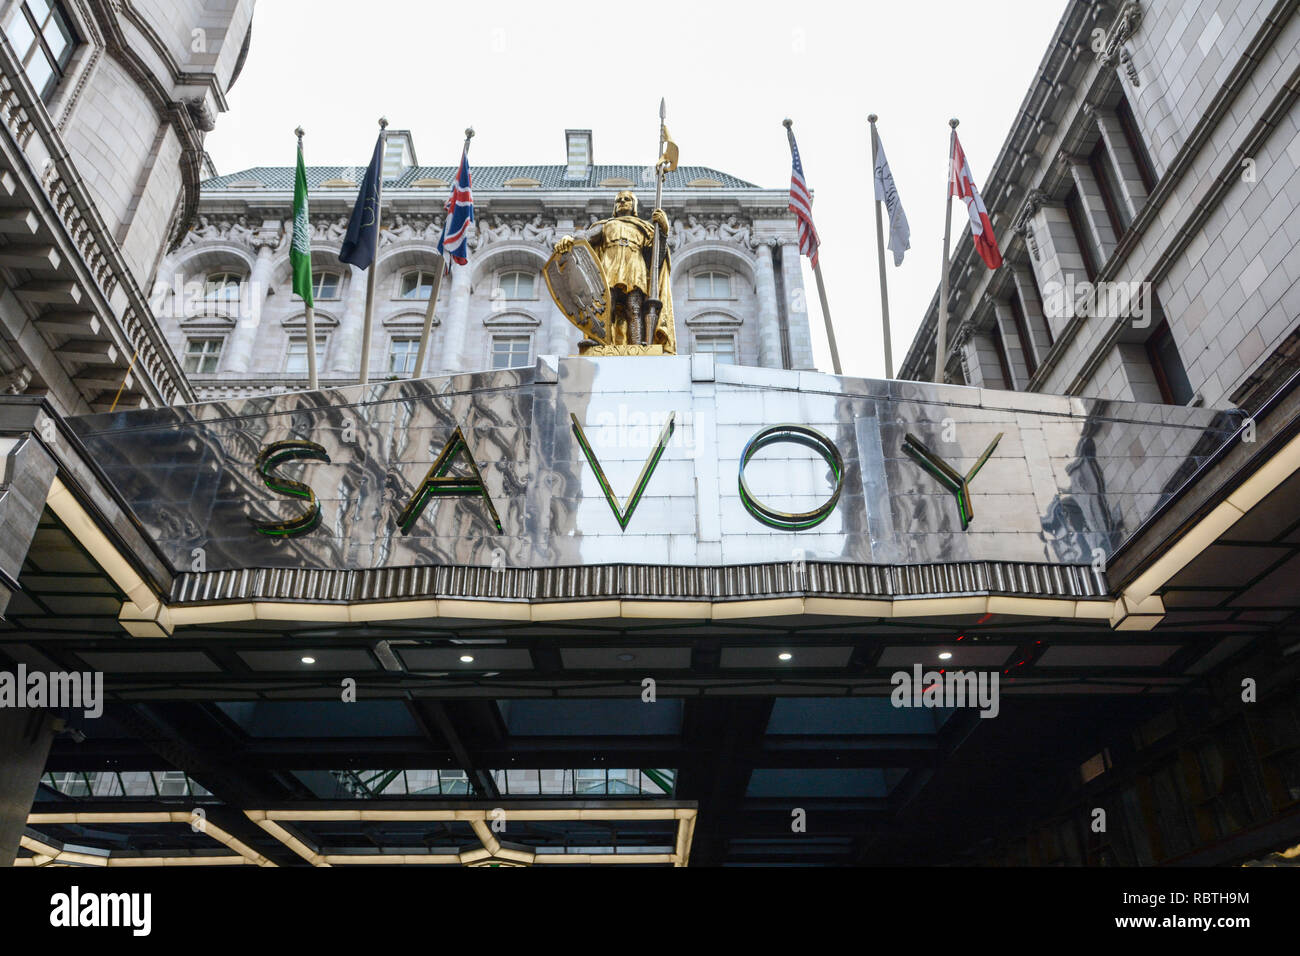 Frontage and entrance to the luxury Savoy Hotel on the Strand, London, UK - Stock Image